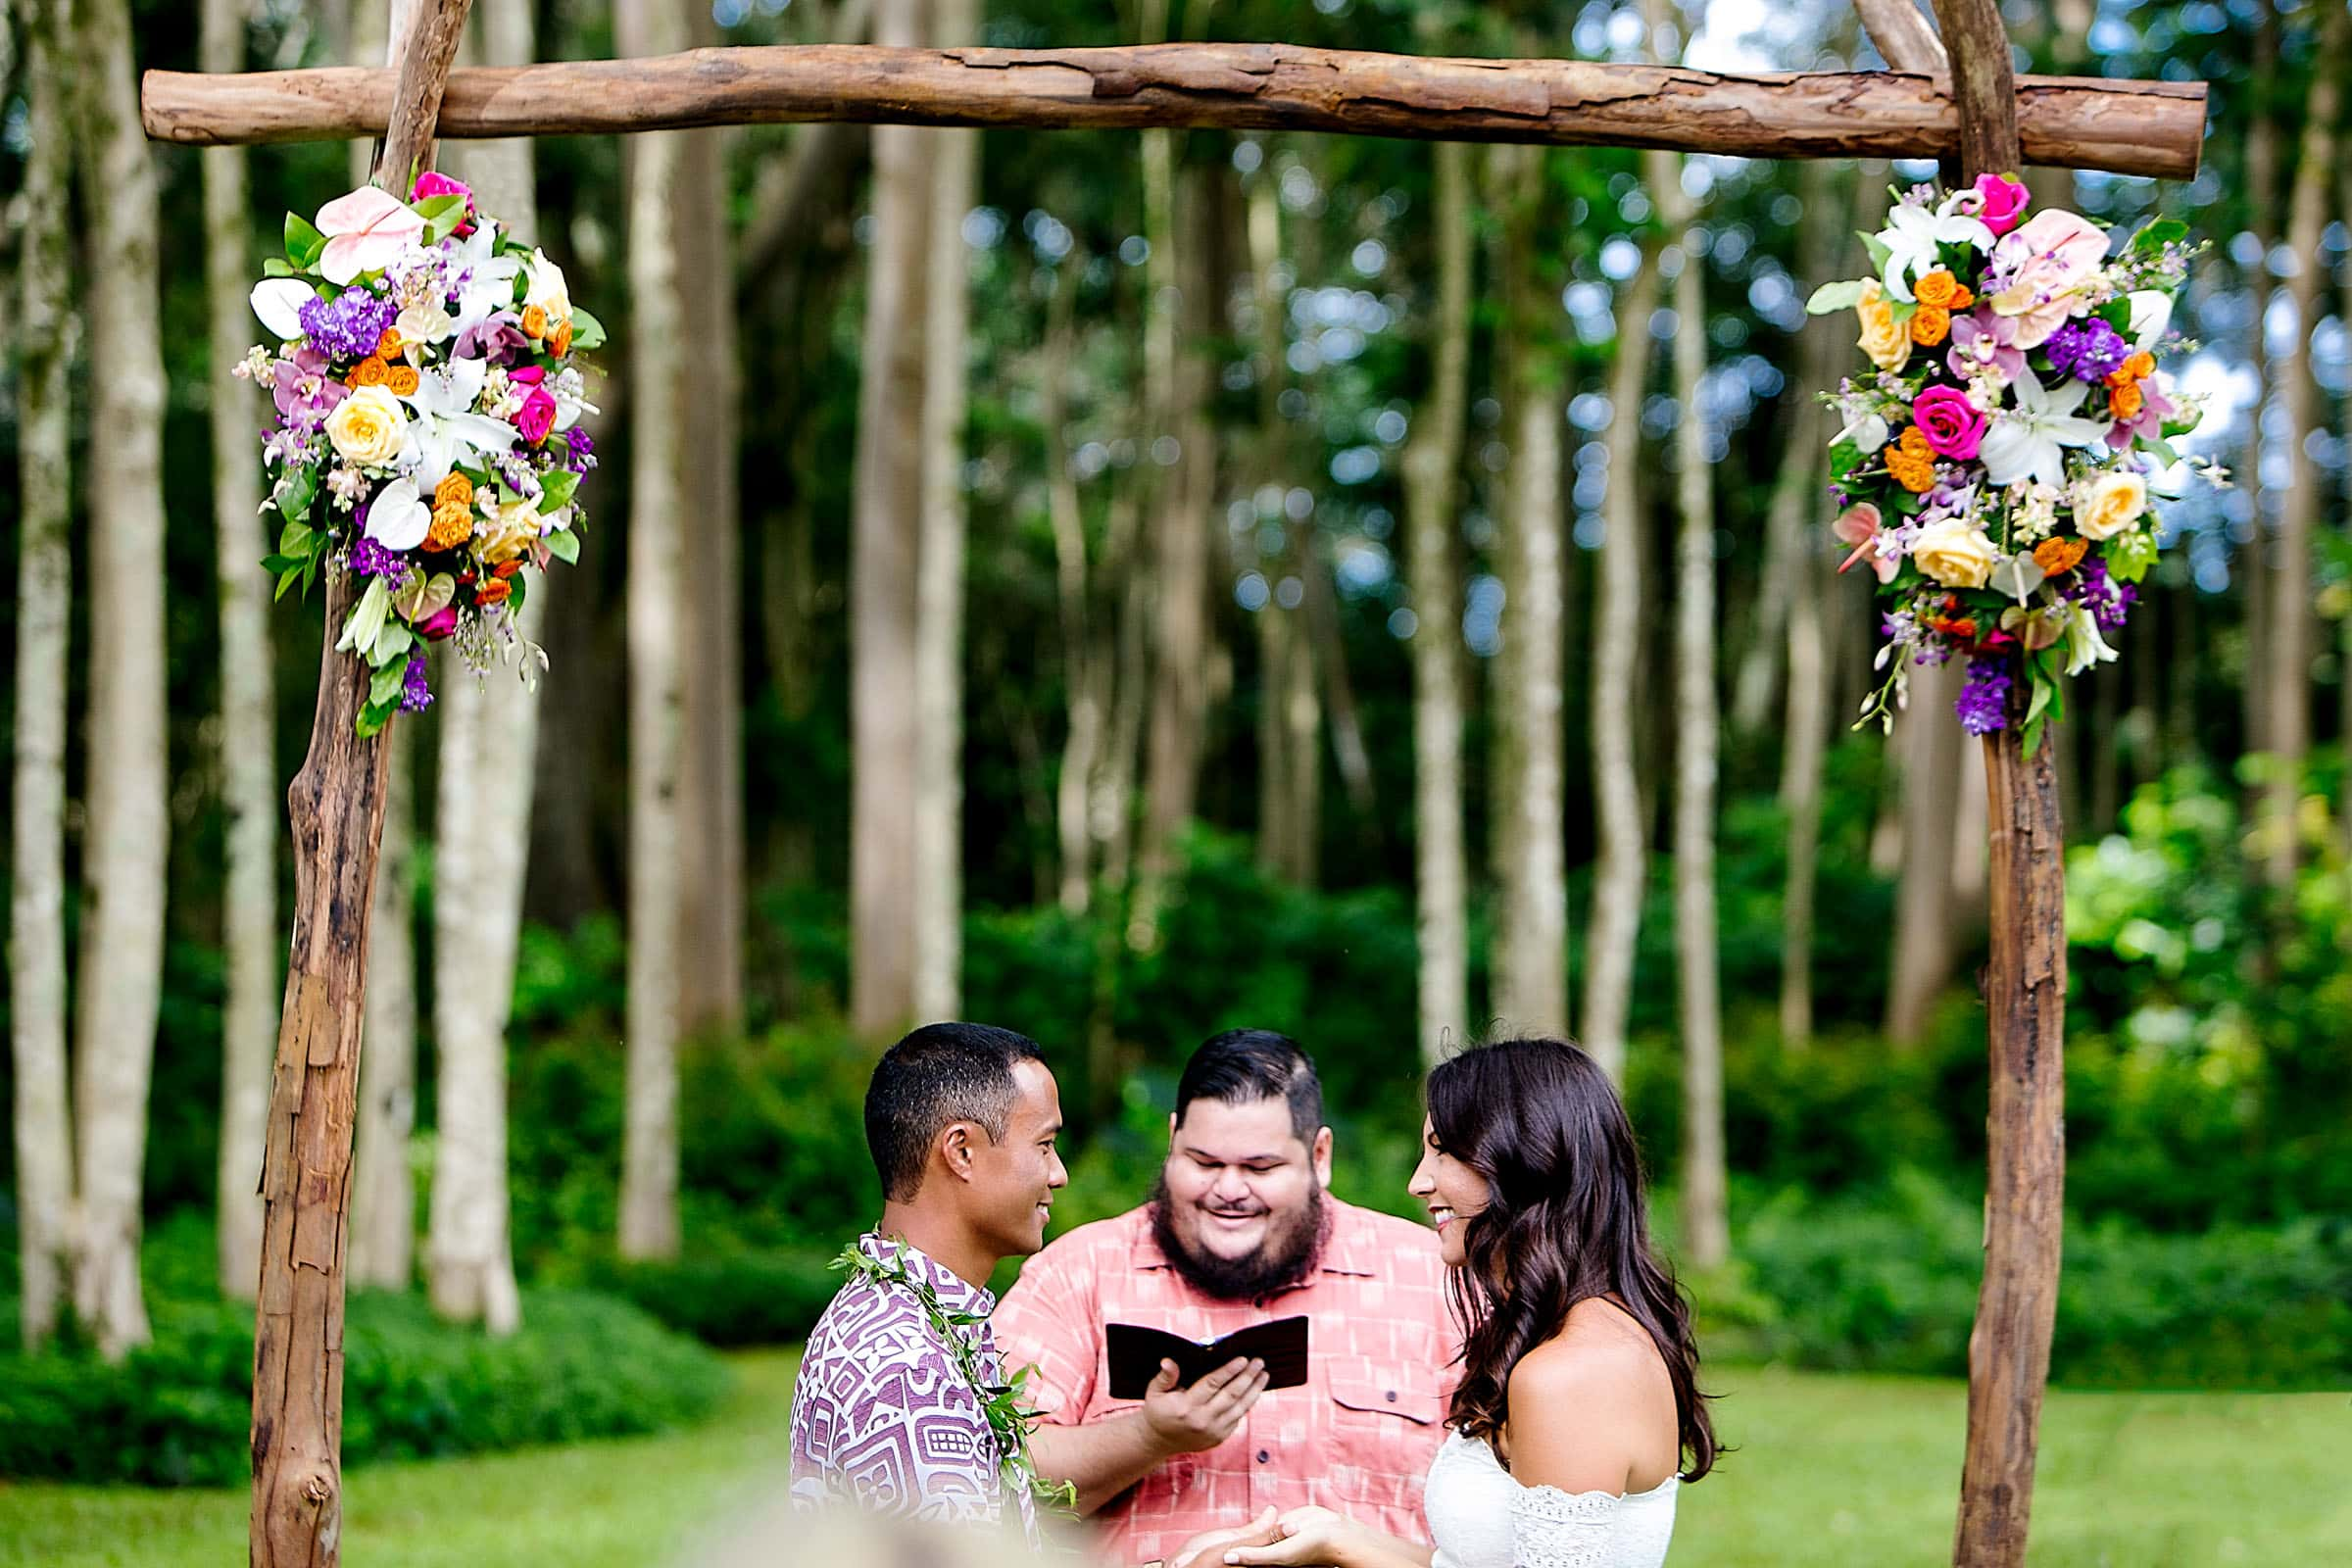 A bride and groom exchanging vows during their Kauai Island wedding ceremony amidst massive majestic acacias trees on a private estate